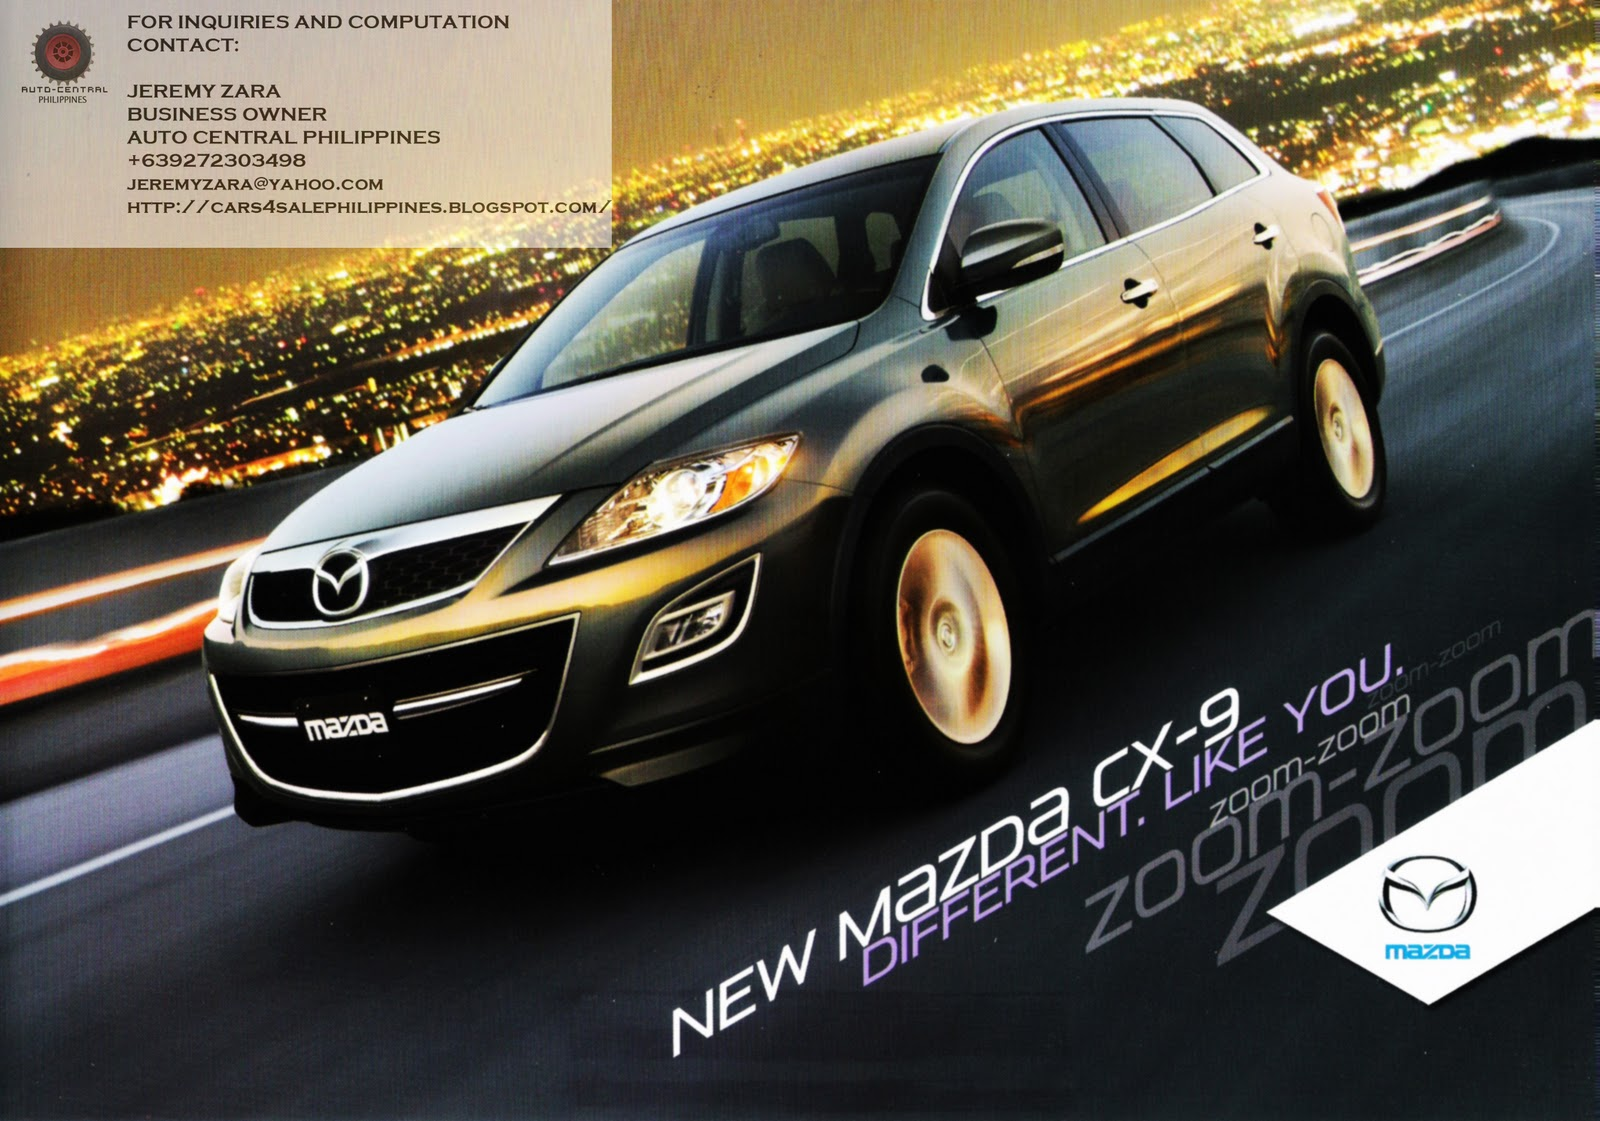 Cars For Sale Philippines Brand New: Brand New Cars For Sale: MAZDA CX9 BRAND NEW FOR SALE